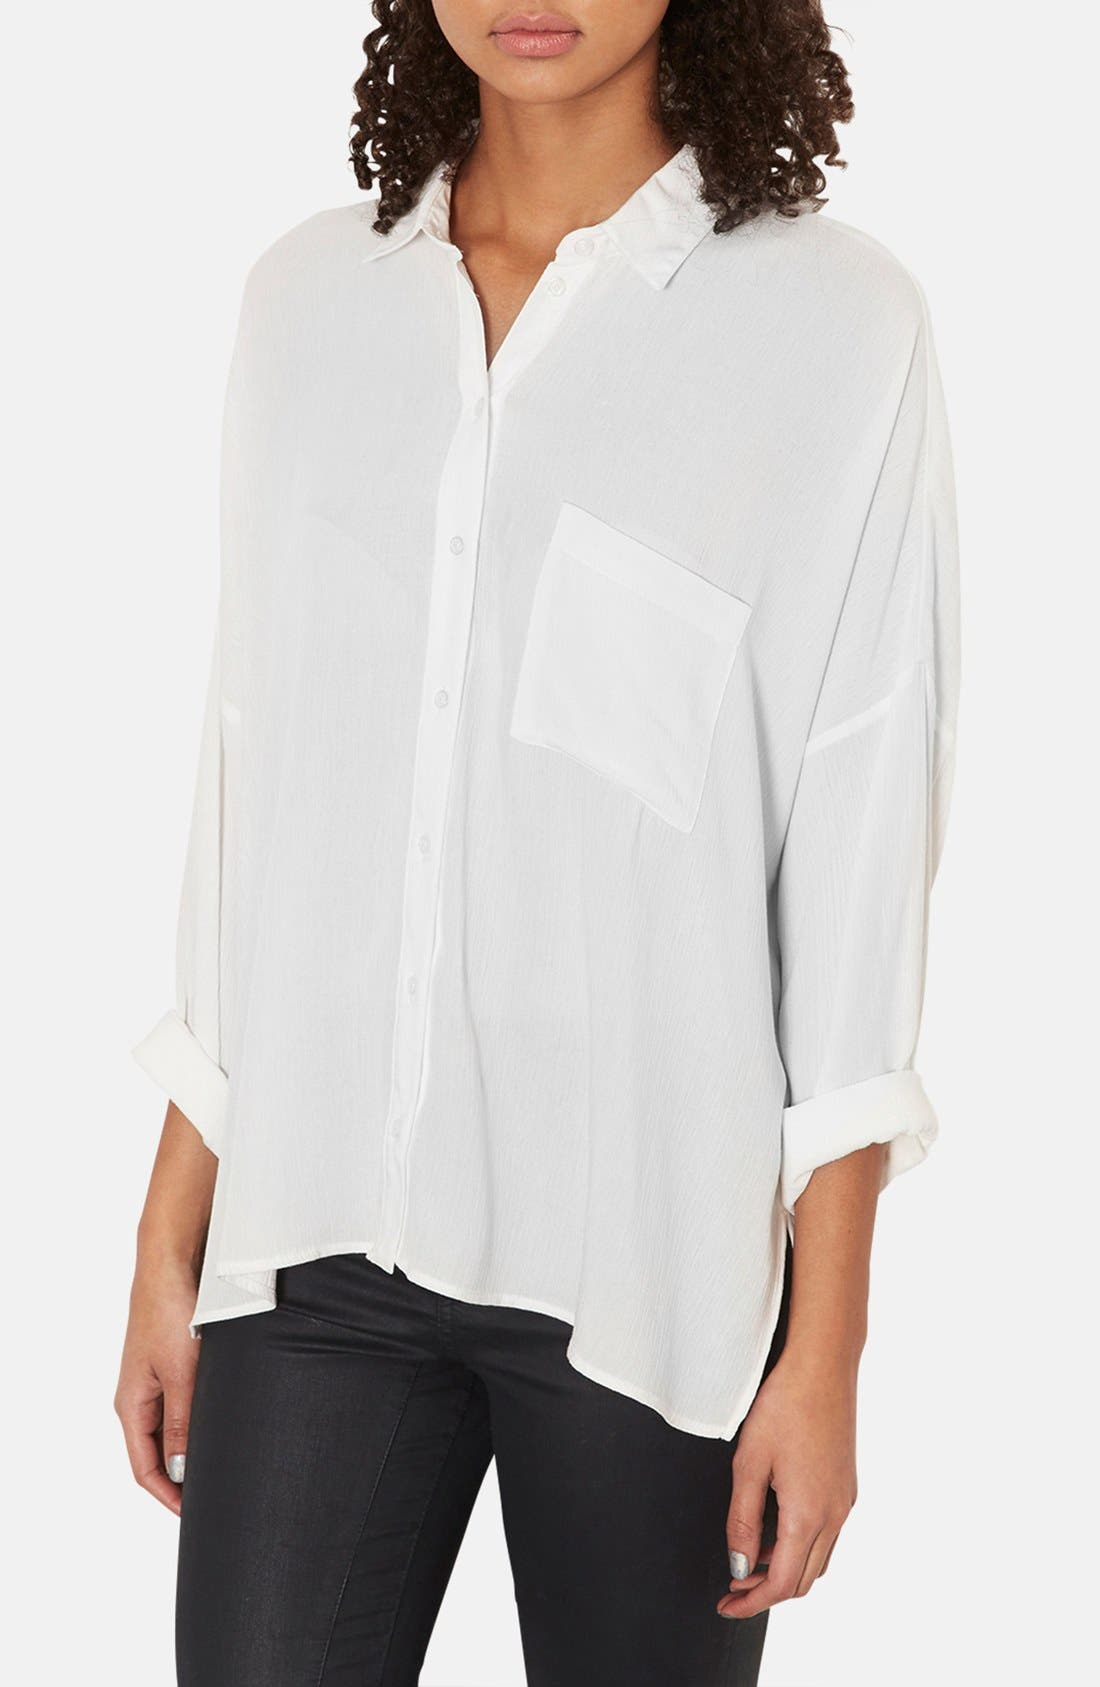 Alternate Image 1 Selected - Topshop Oversized Crinkle Shirt